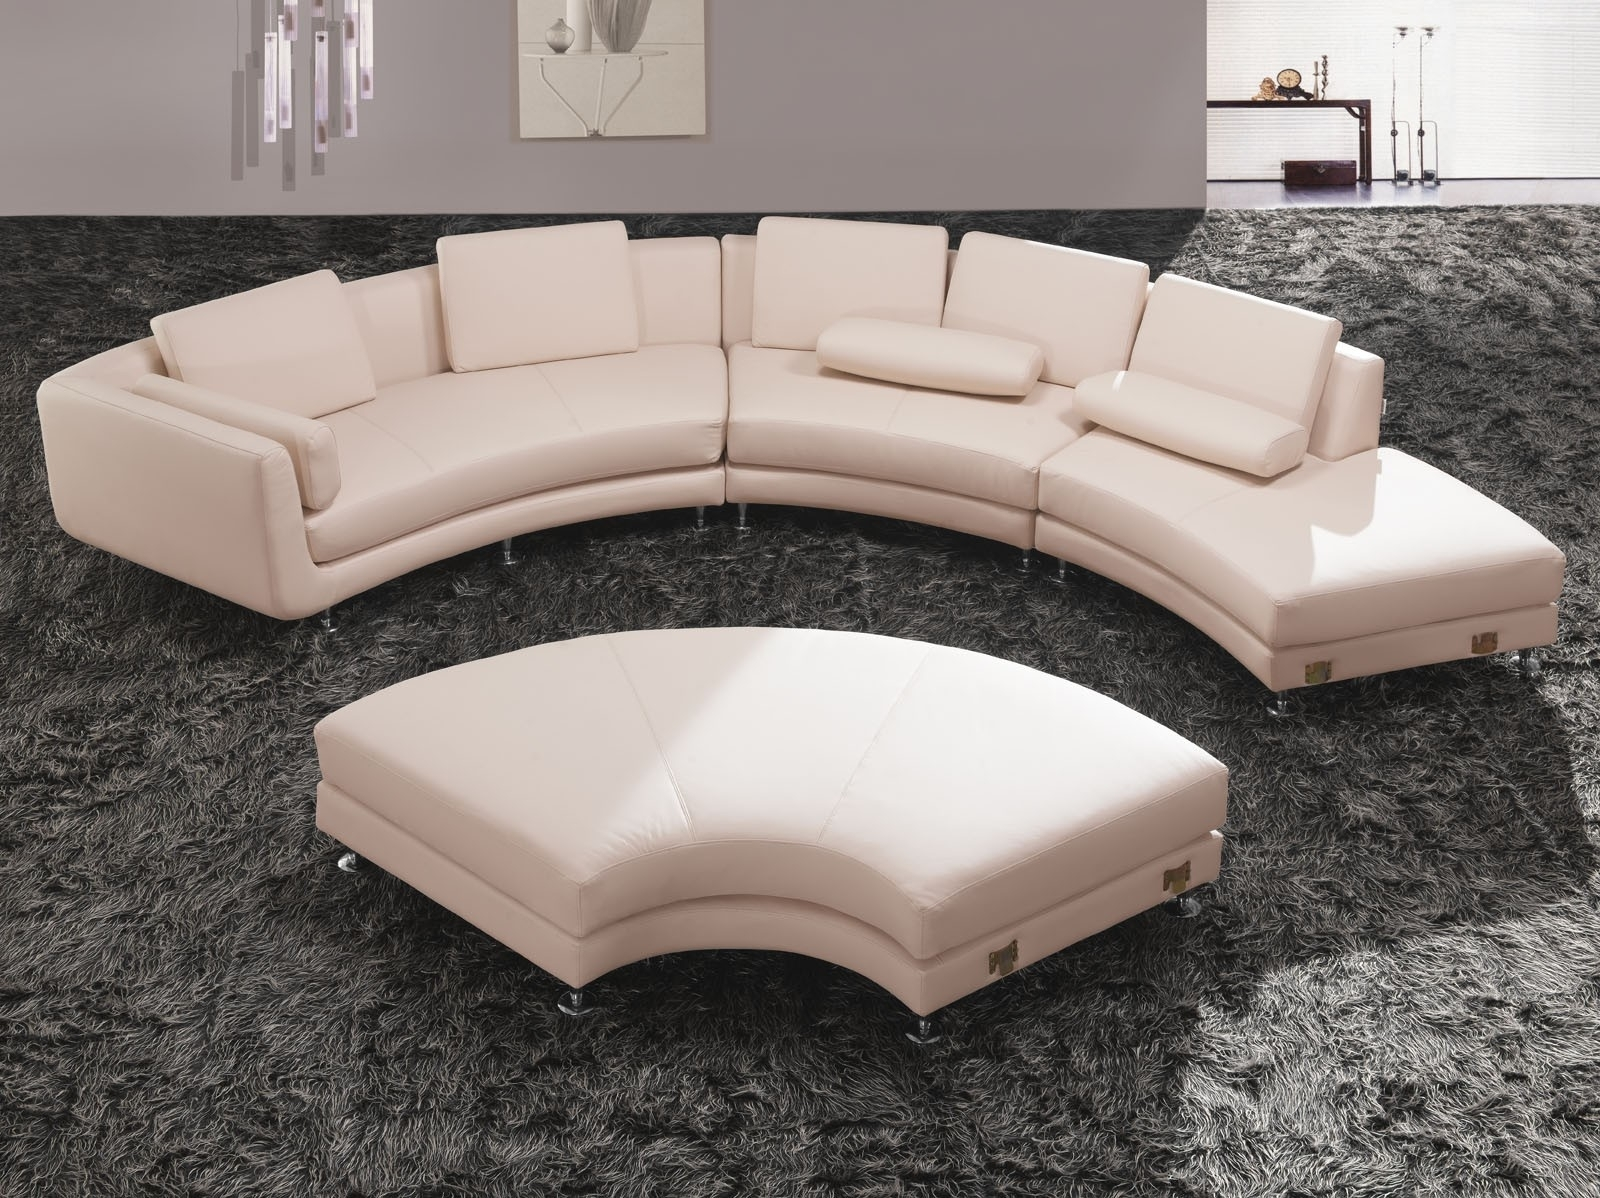 Sofa : Glamorous Round Sectional Sofa Bed Curved Leather Tufted Within Round Sectional Sofas (Image 10 of 10)